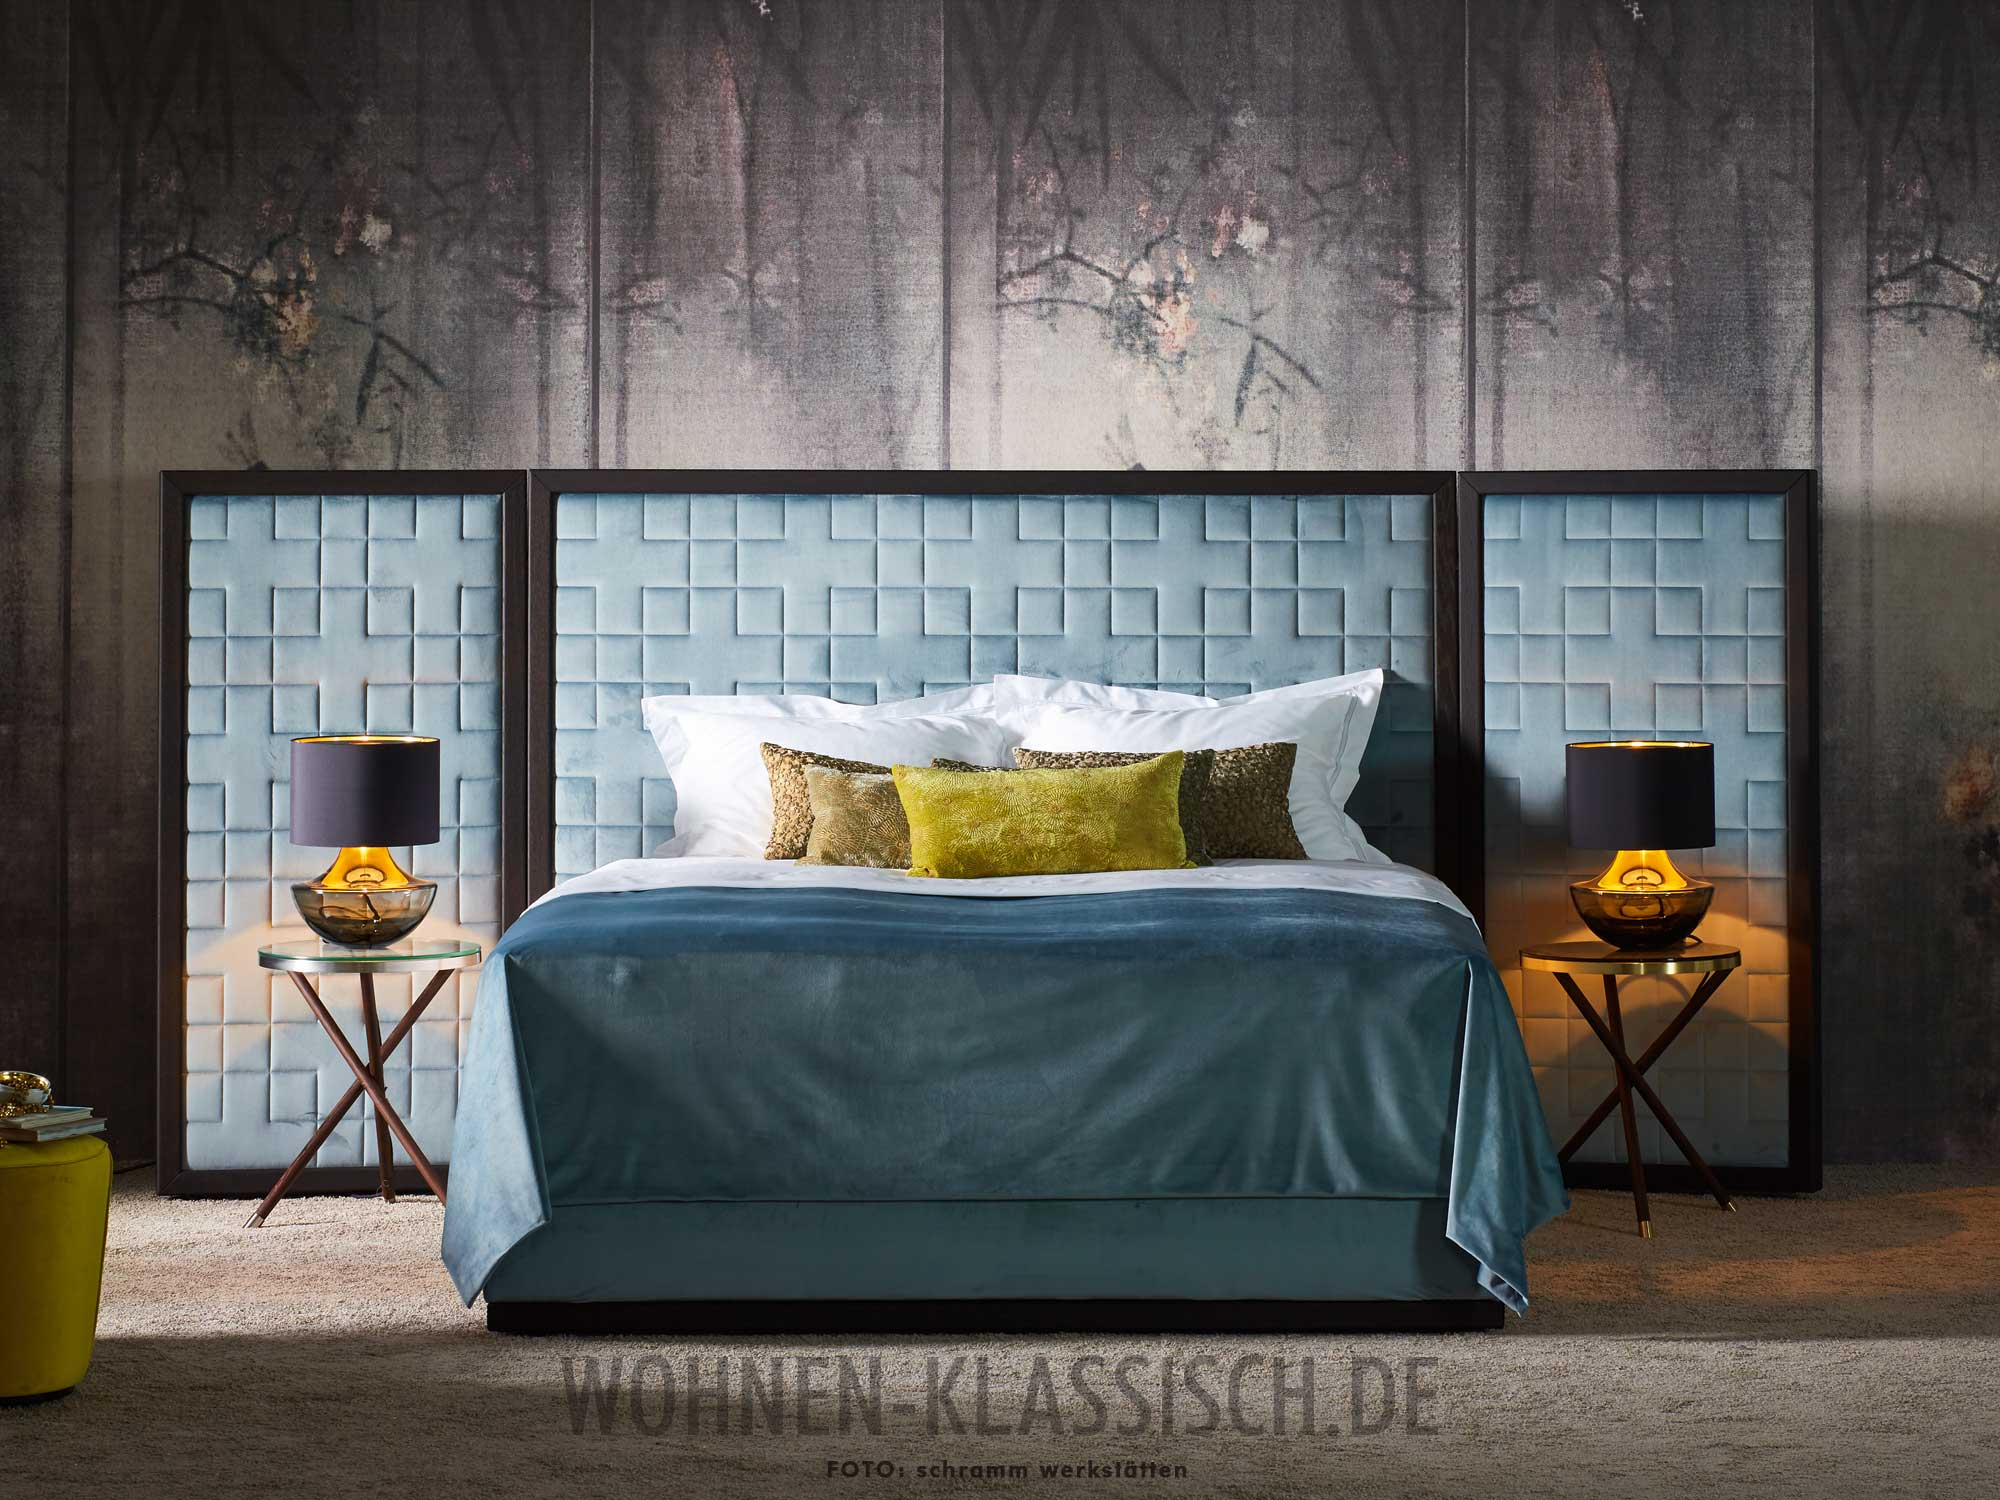 umarmendes luxusbett klassisch wohnen. Black Bedroom Furniture Sets. Home Design Ideas